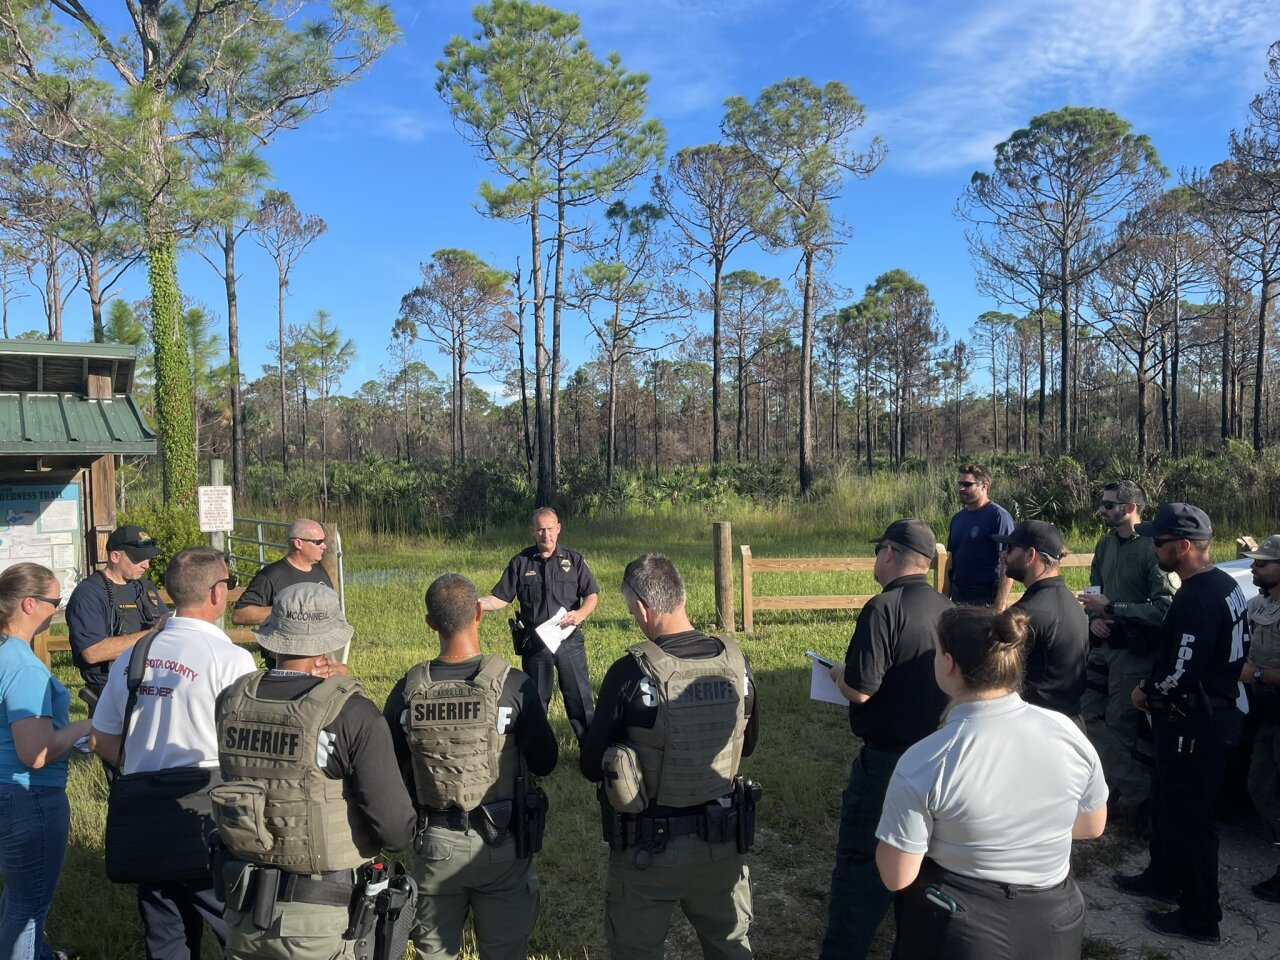 authorities gather before search for Brian Laundrie at T. Mabry Carlton Jr. Memorial Reserve